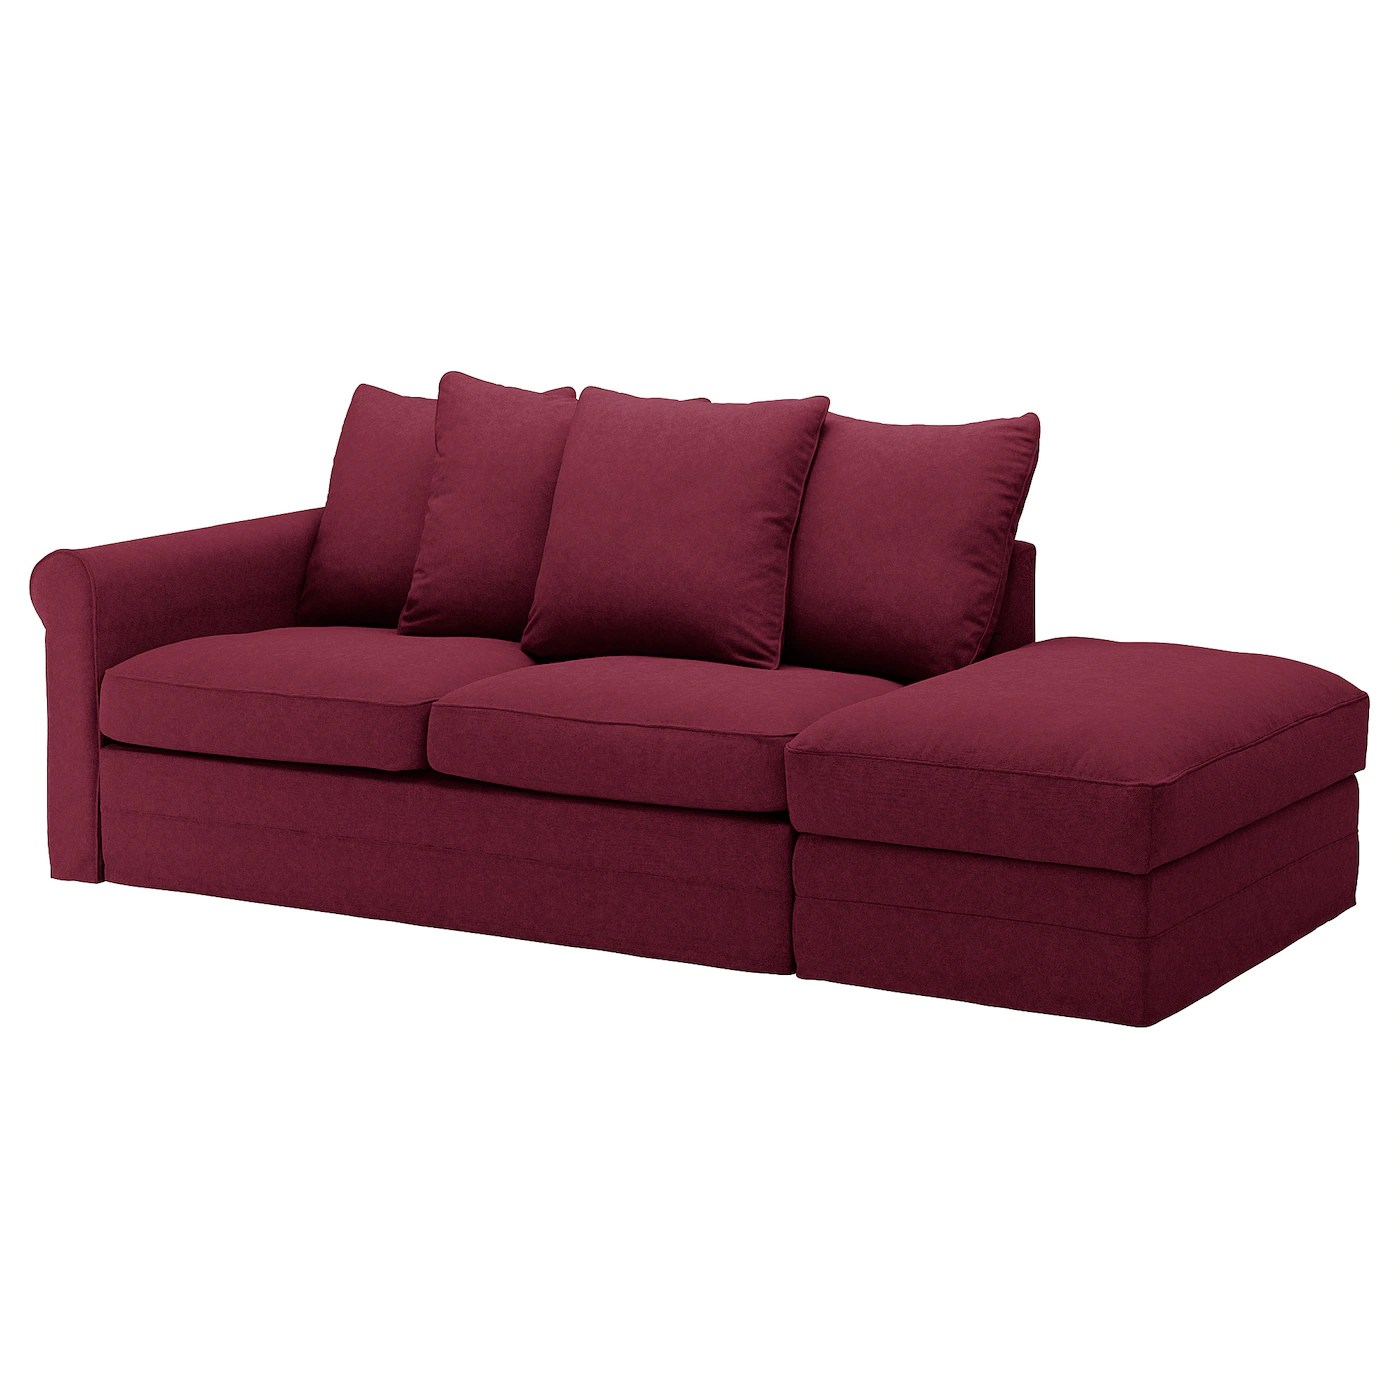 Chair Turns Into Bed Sofa Beds Corner Sofa Beds Futons Ikea